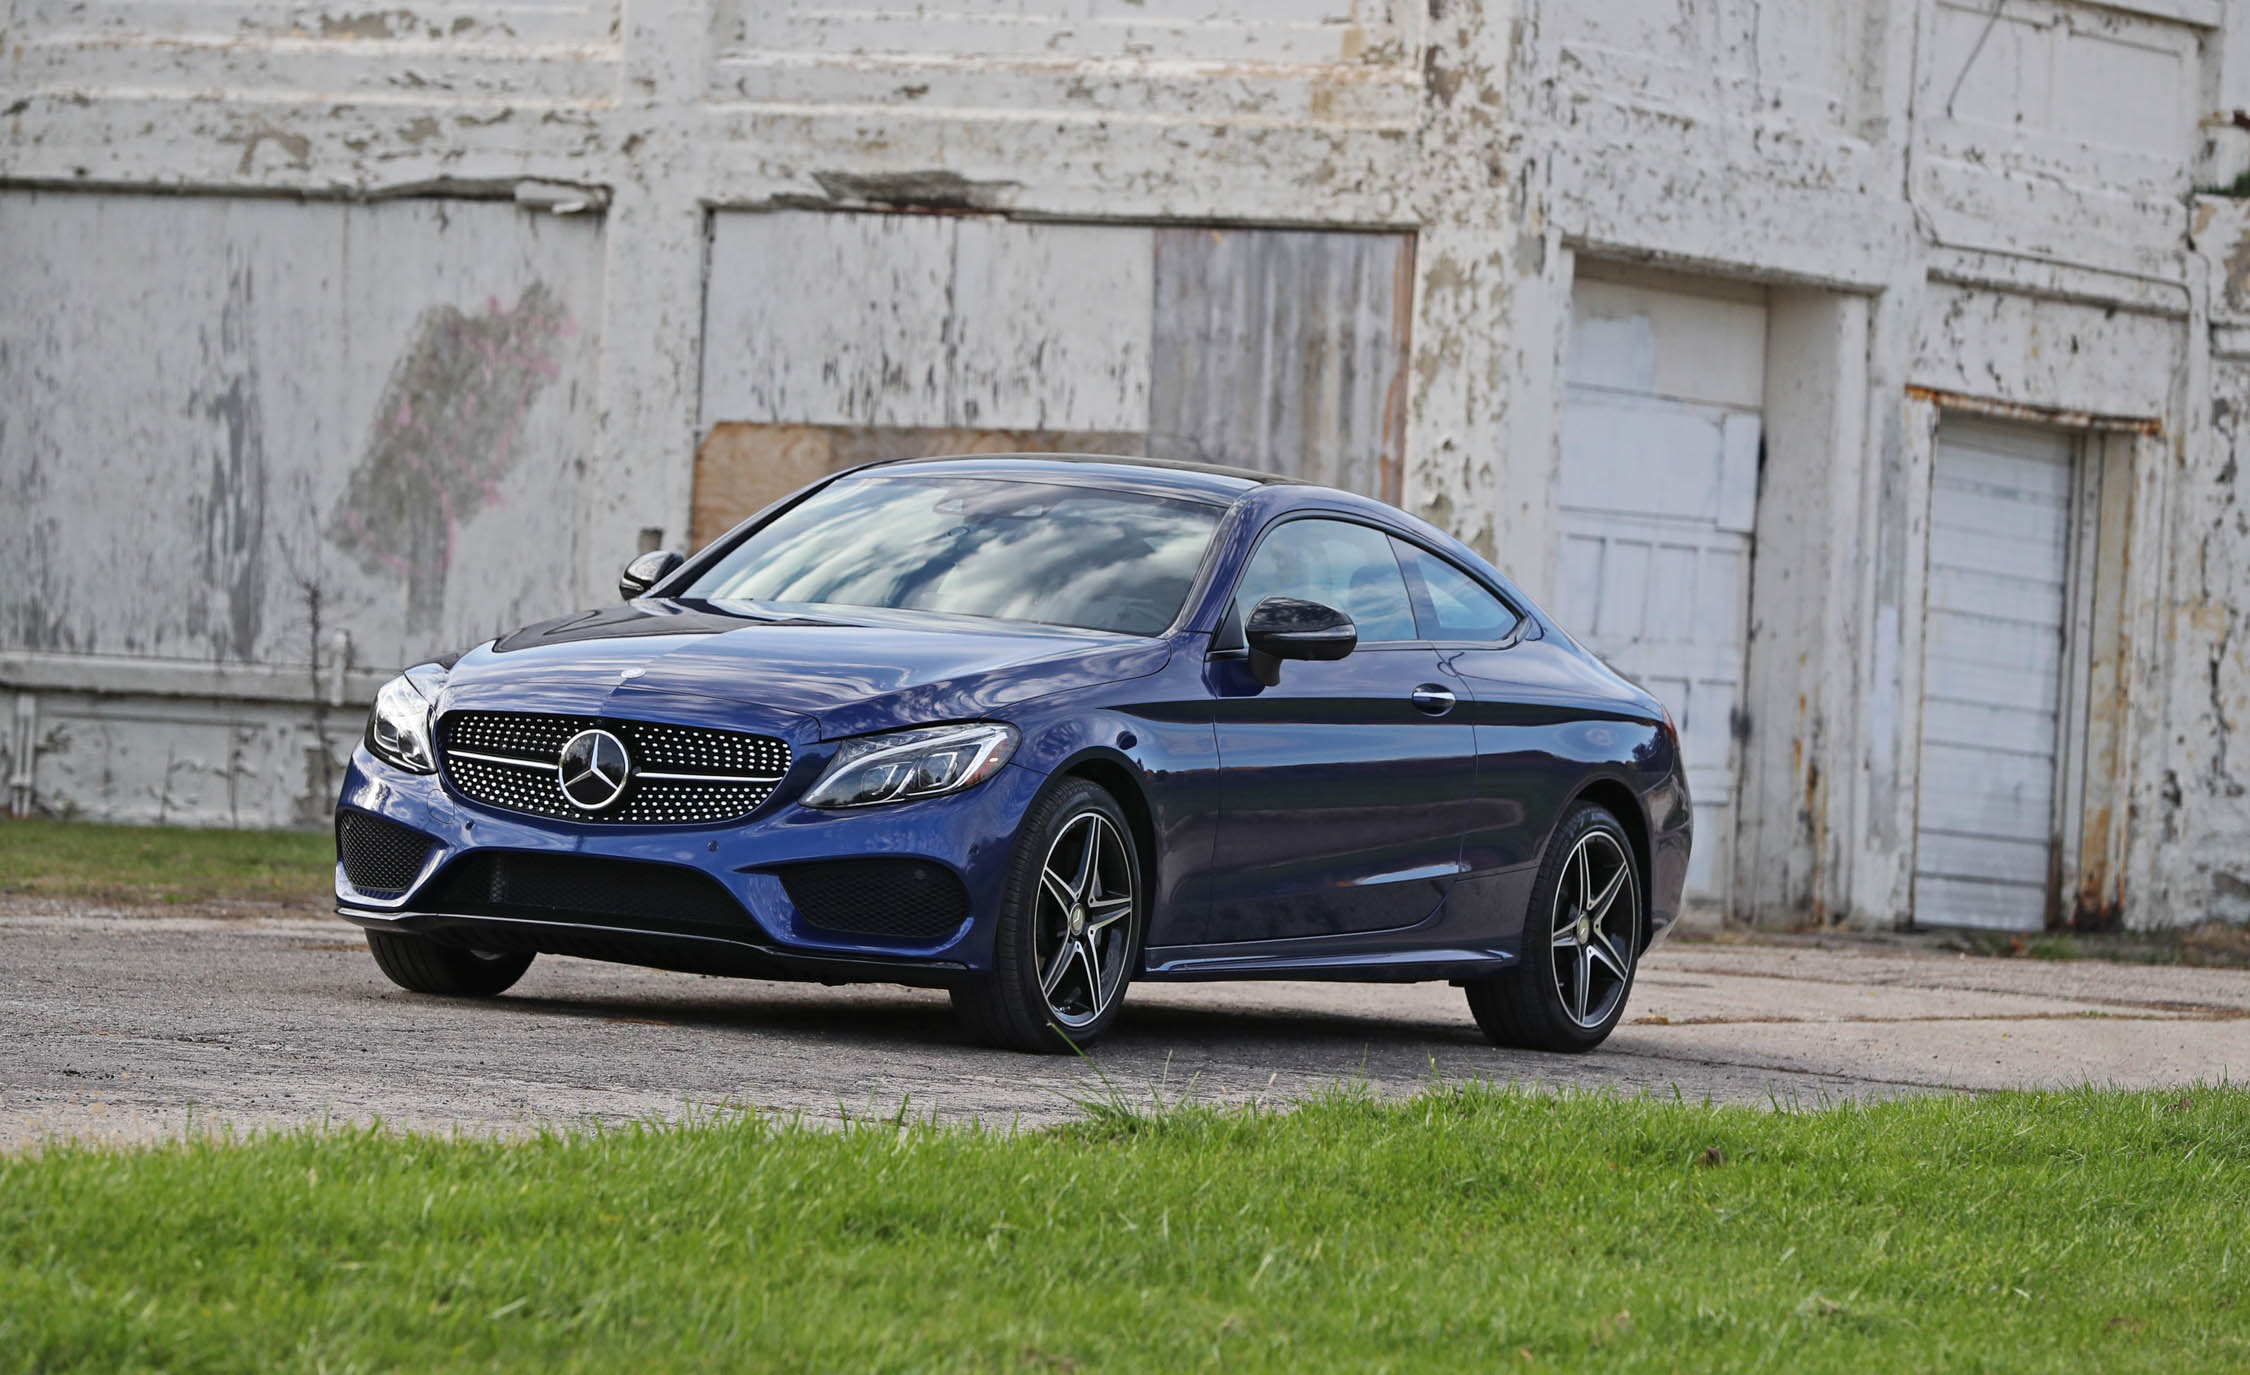 2017 Mercedes Benz C300 4MATIC Coupe Exterior Front And Side (View 42 of 44)